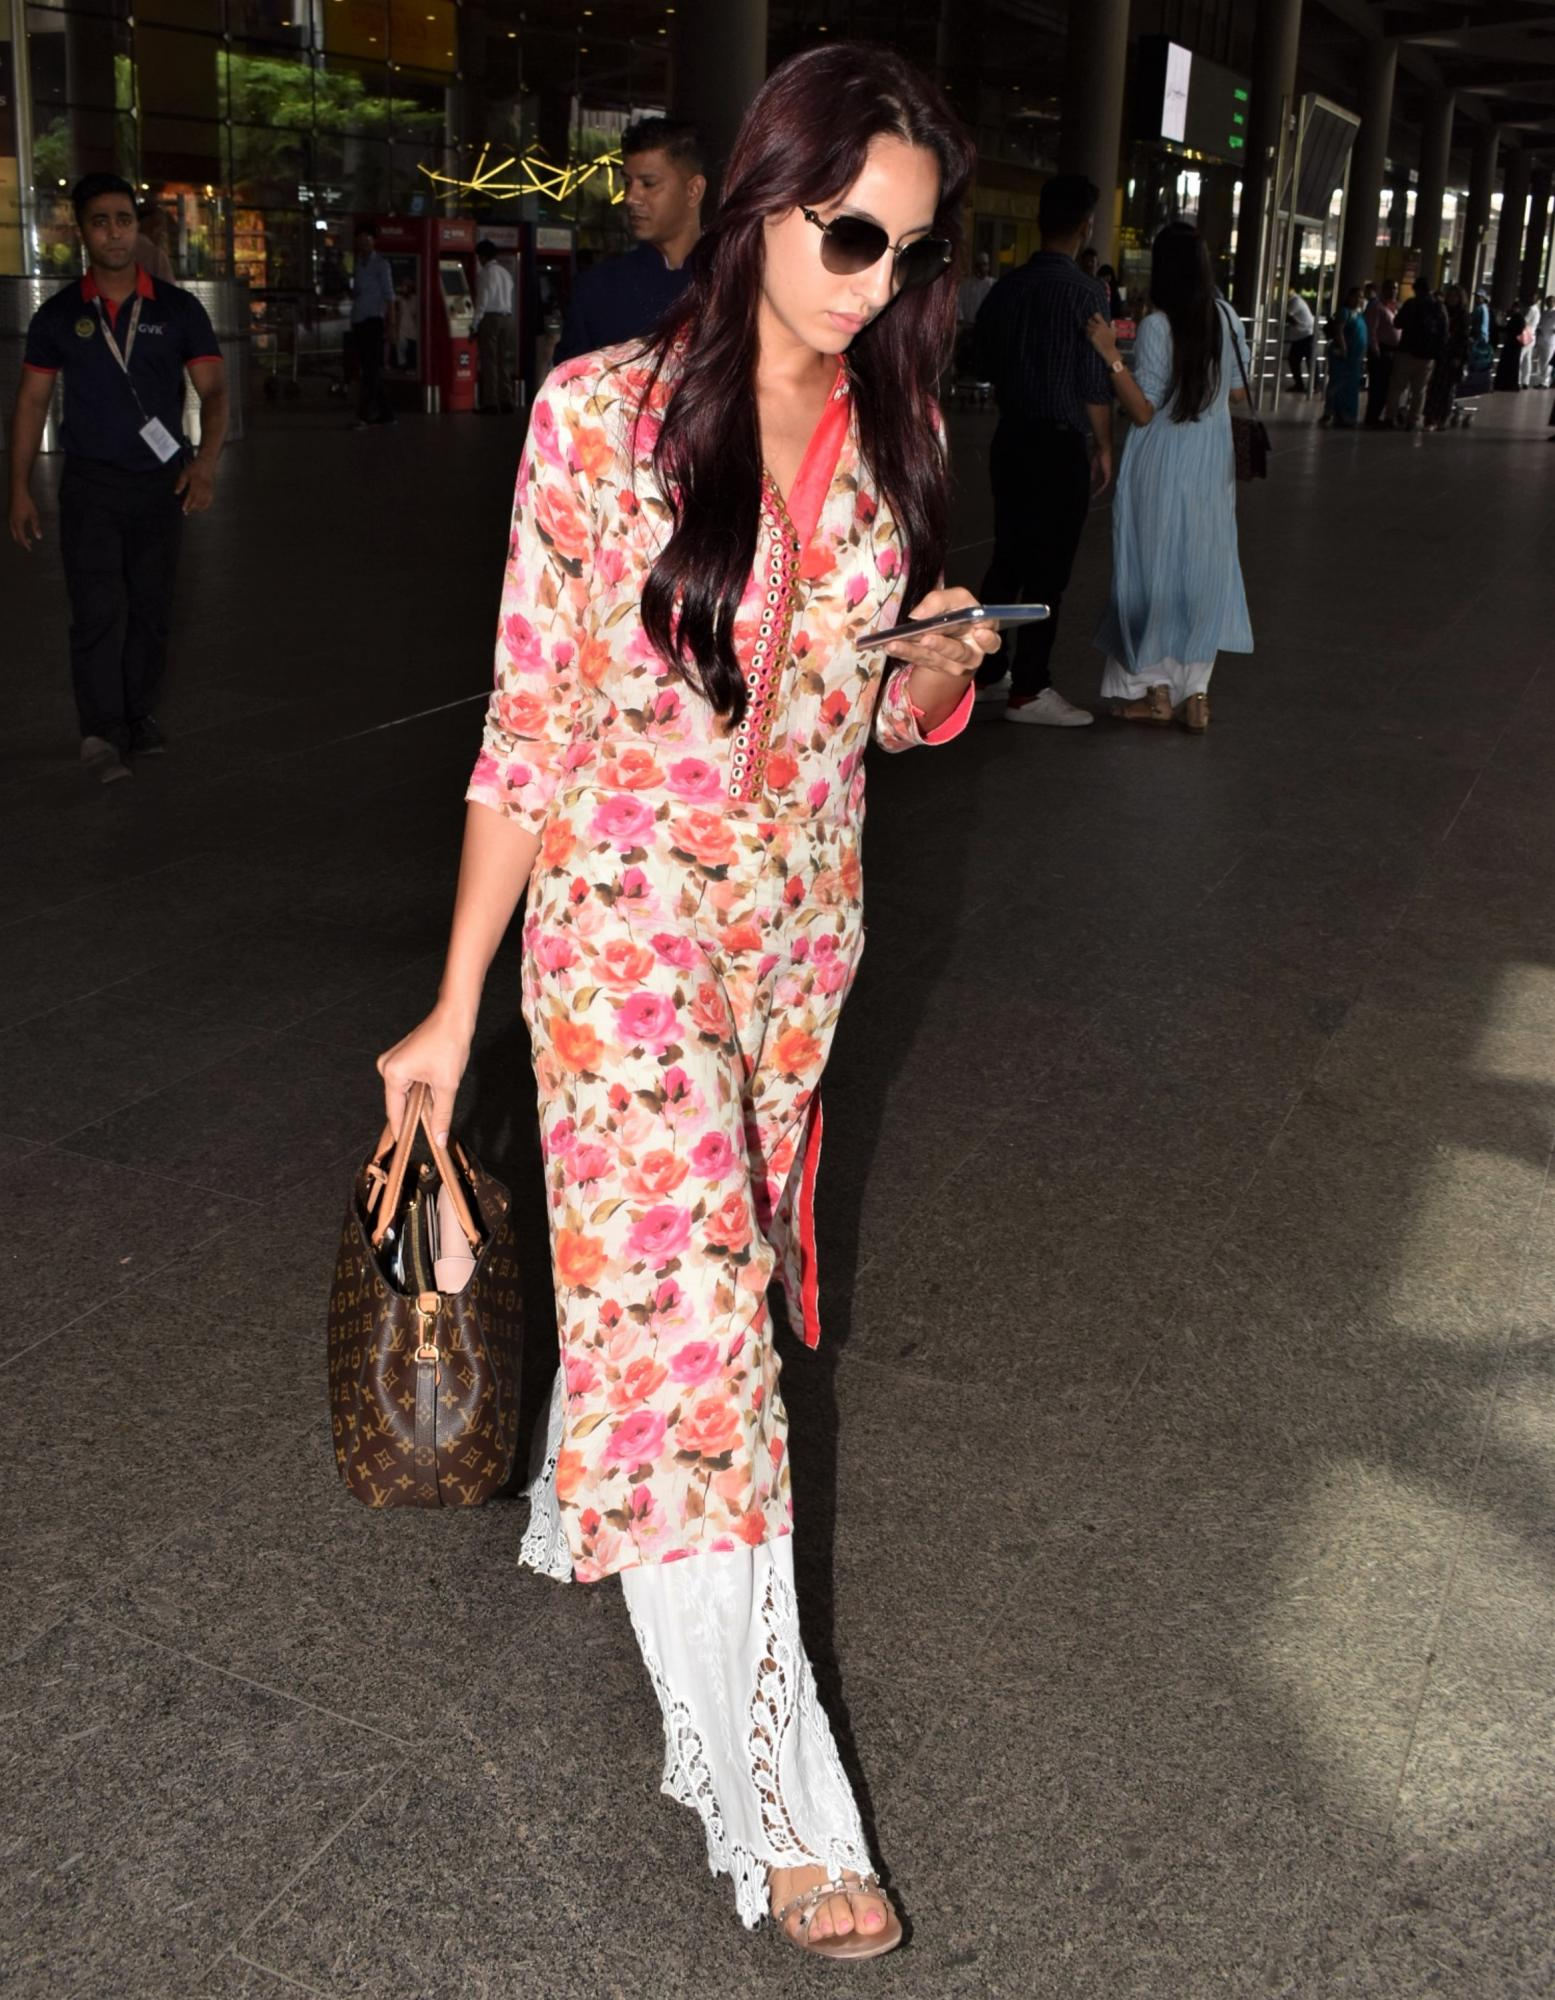 Nora Fatehi: Dilbar Girl is Radiant in Florals For Her Latest Look